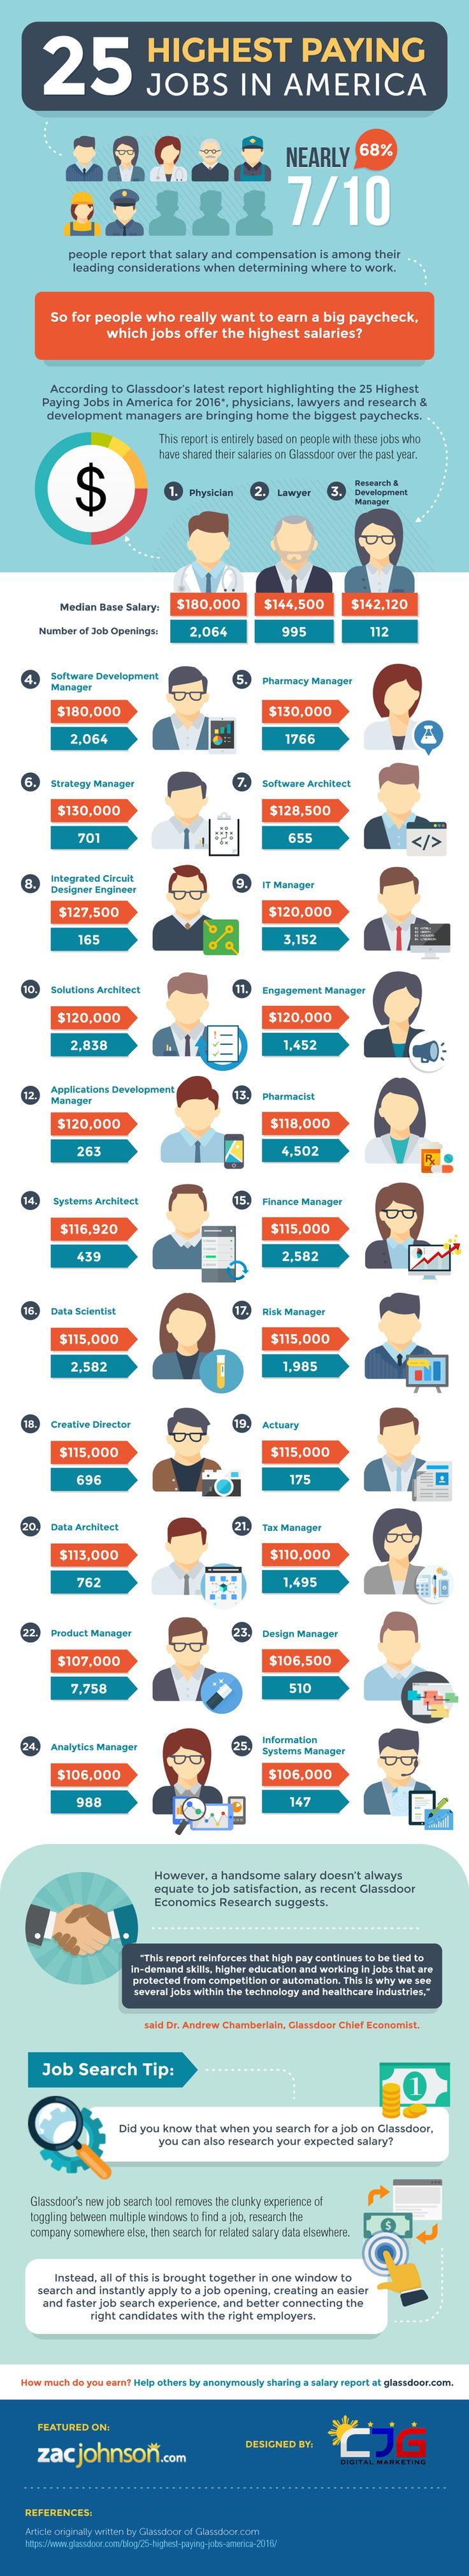 25 Highest Paying Jobs in America for 2016 [Infographic]